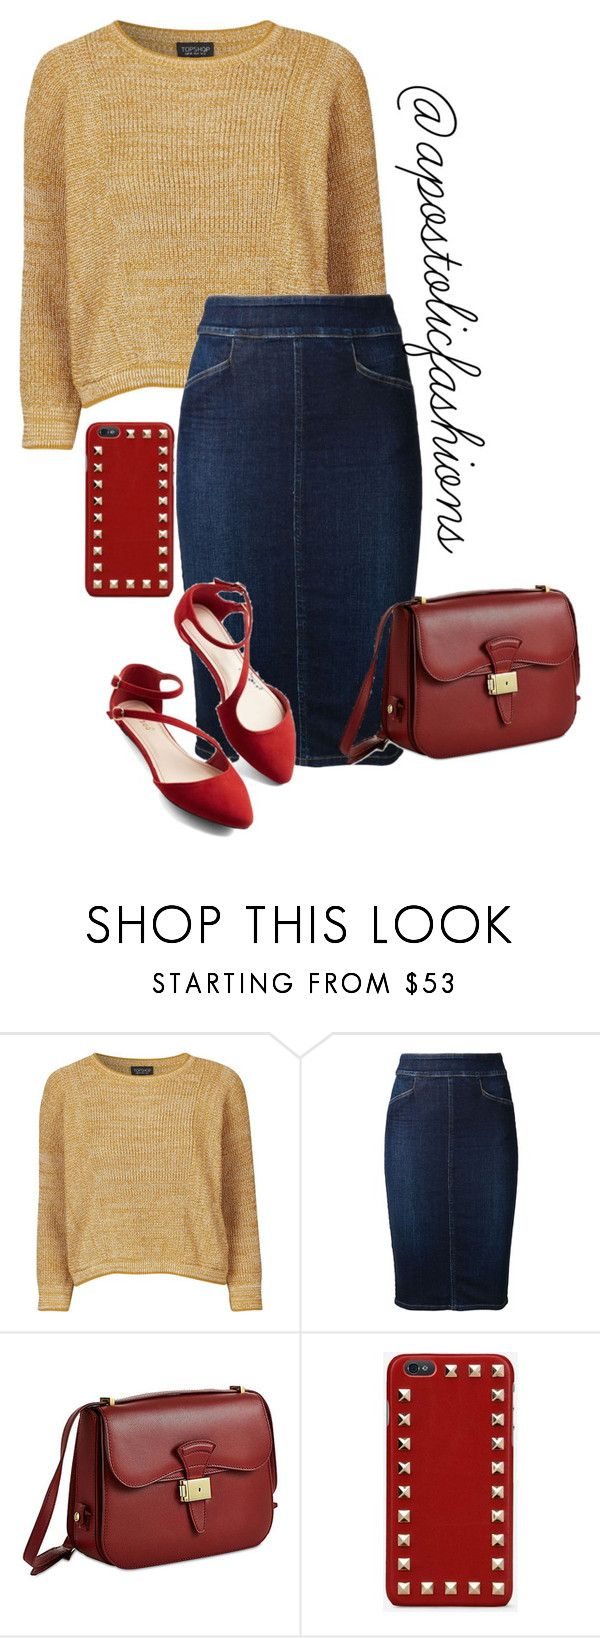 """""""Apostolic Fashions #1344"""" by apostolicfashions on Polyvore featuring Topshop, Citizens of Humanity, Dressage Collection and Valentino"""